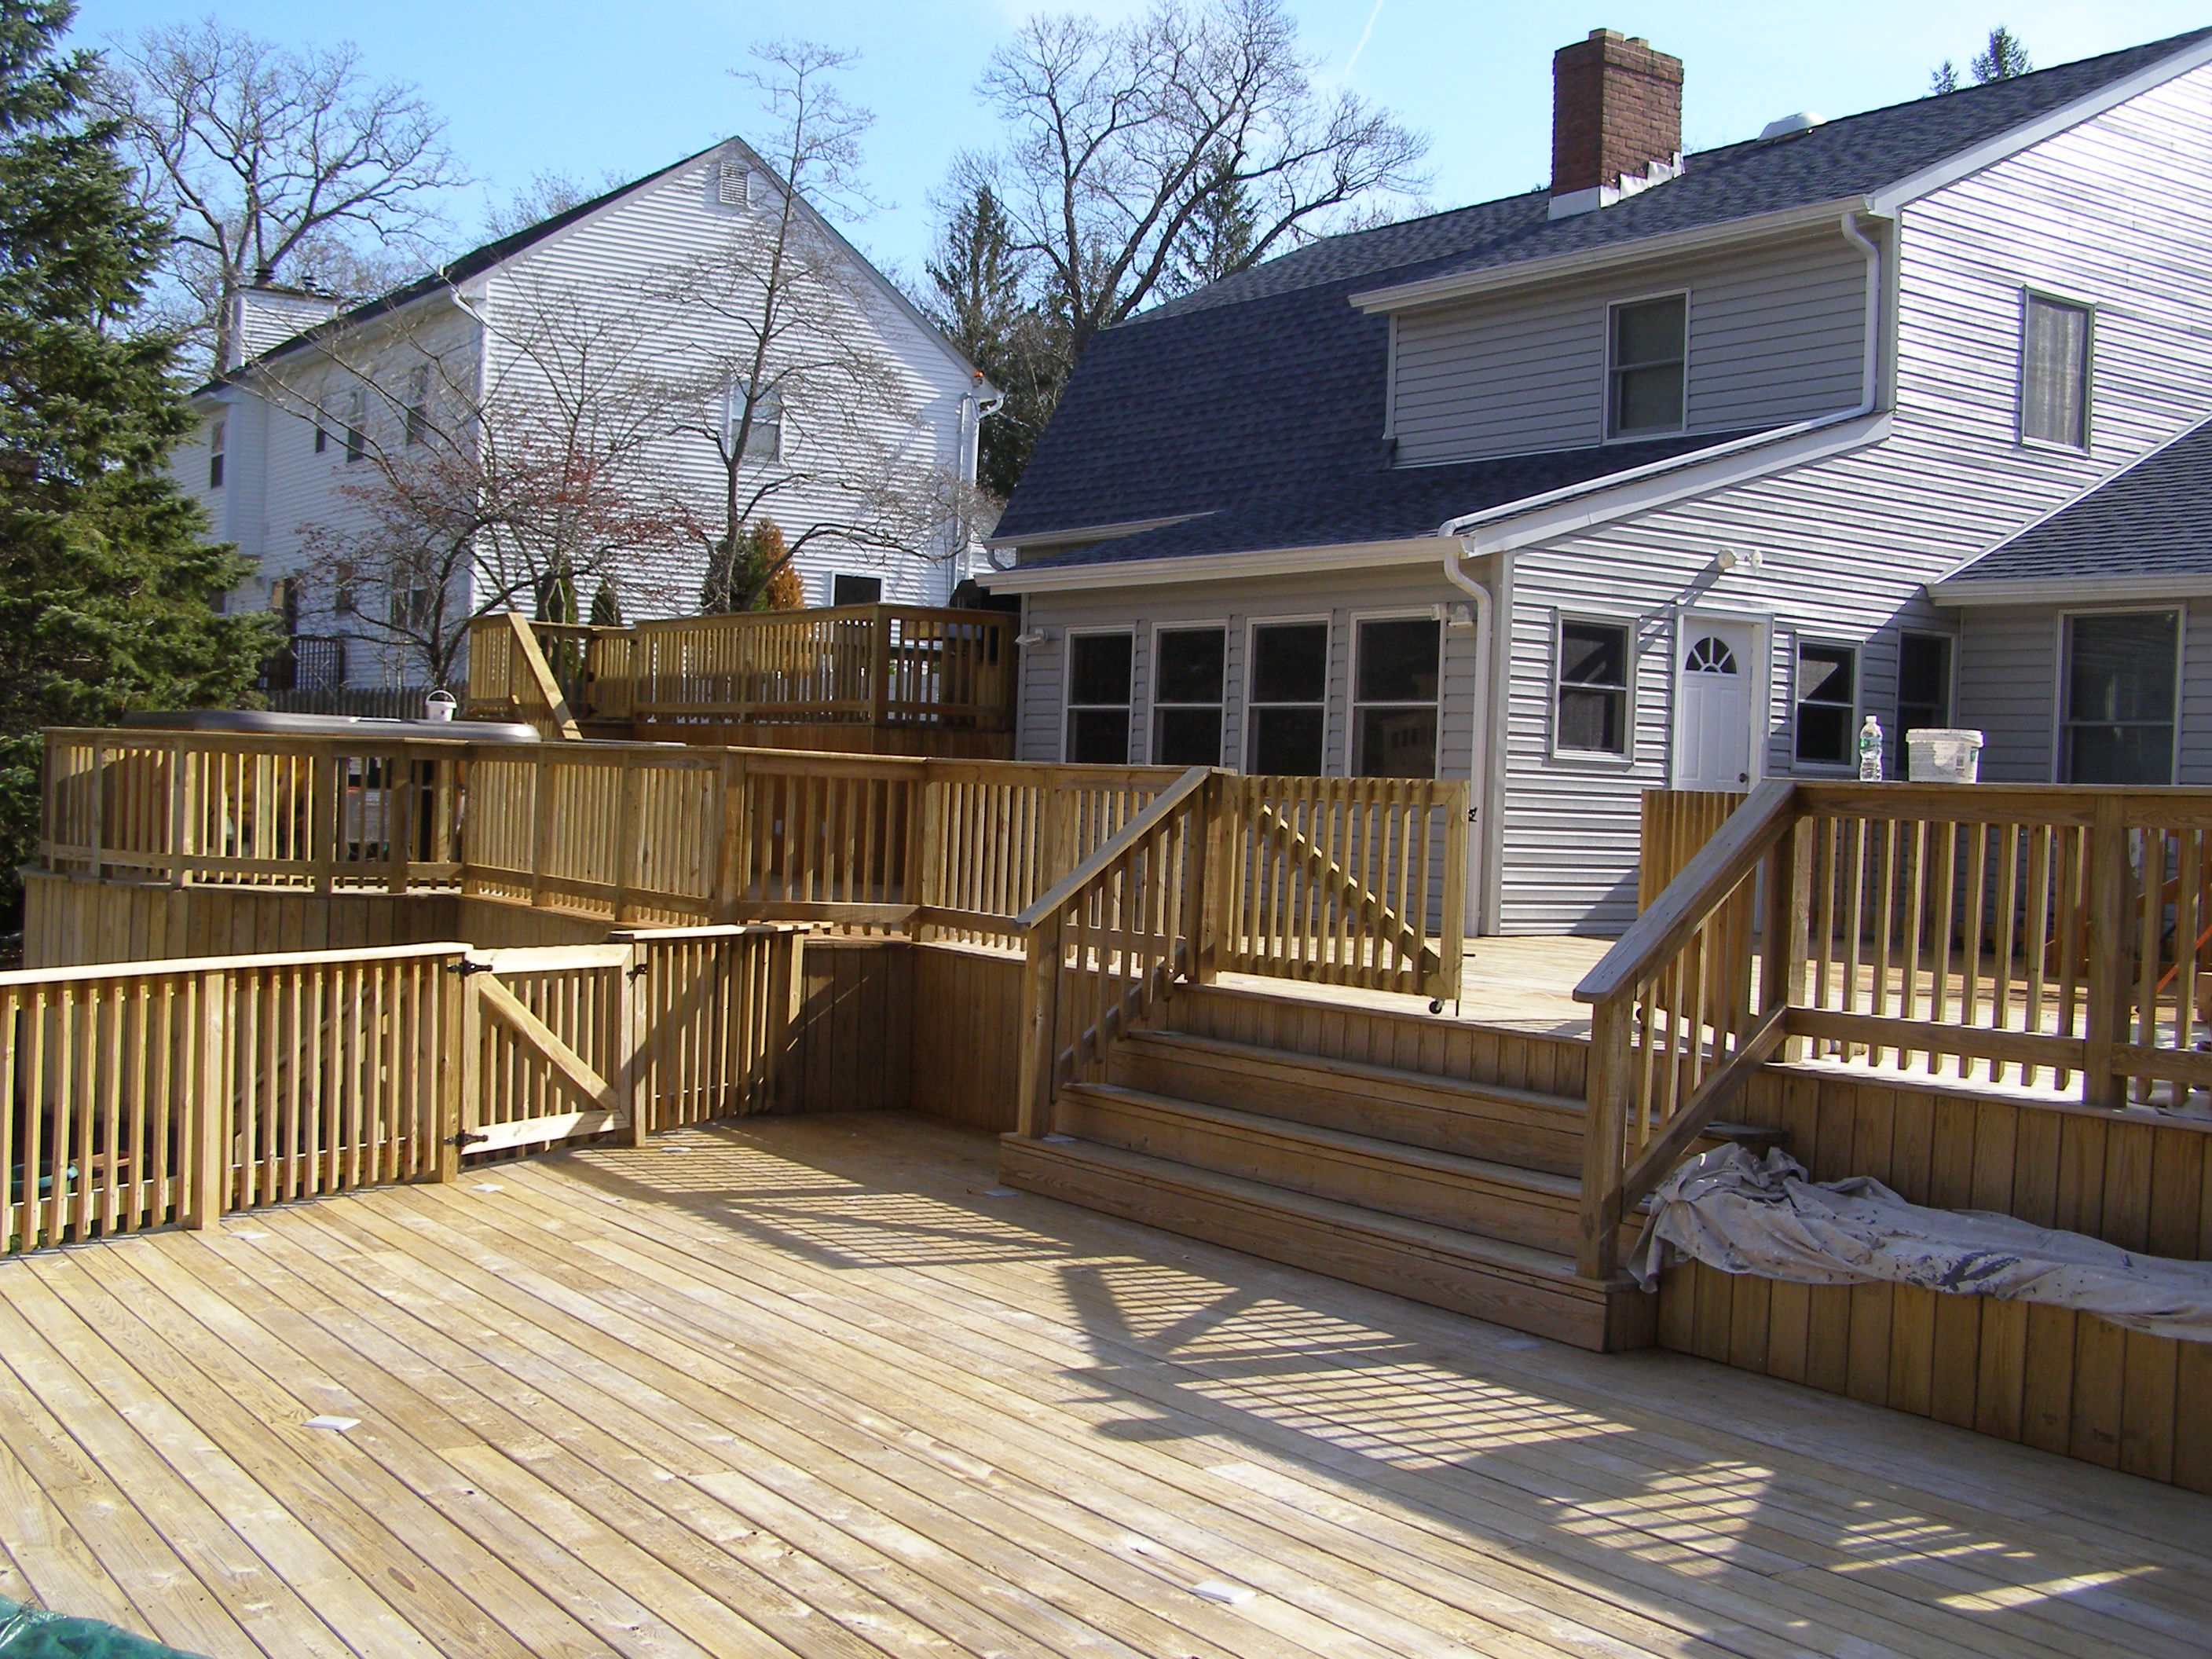 Deck before deck restoration.